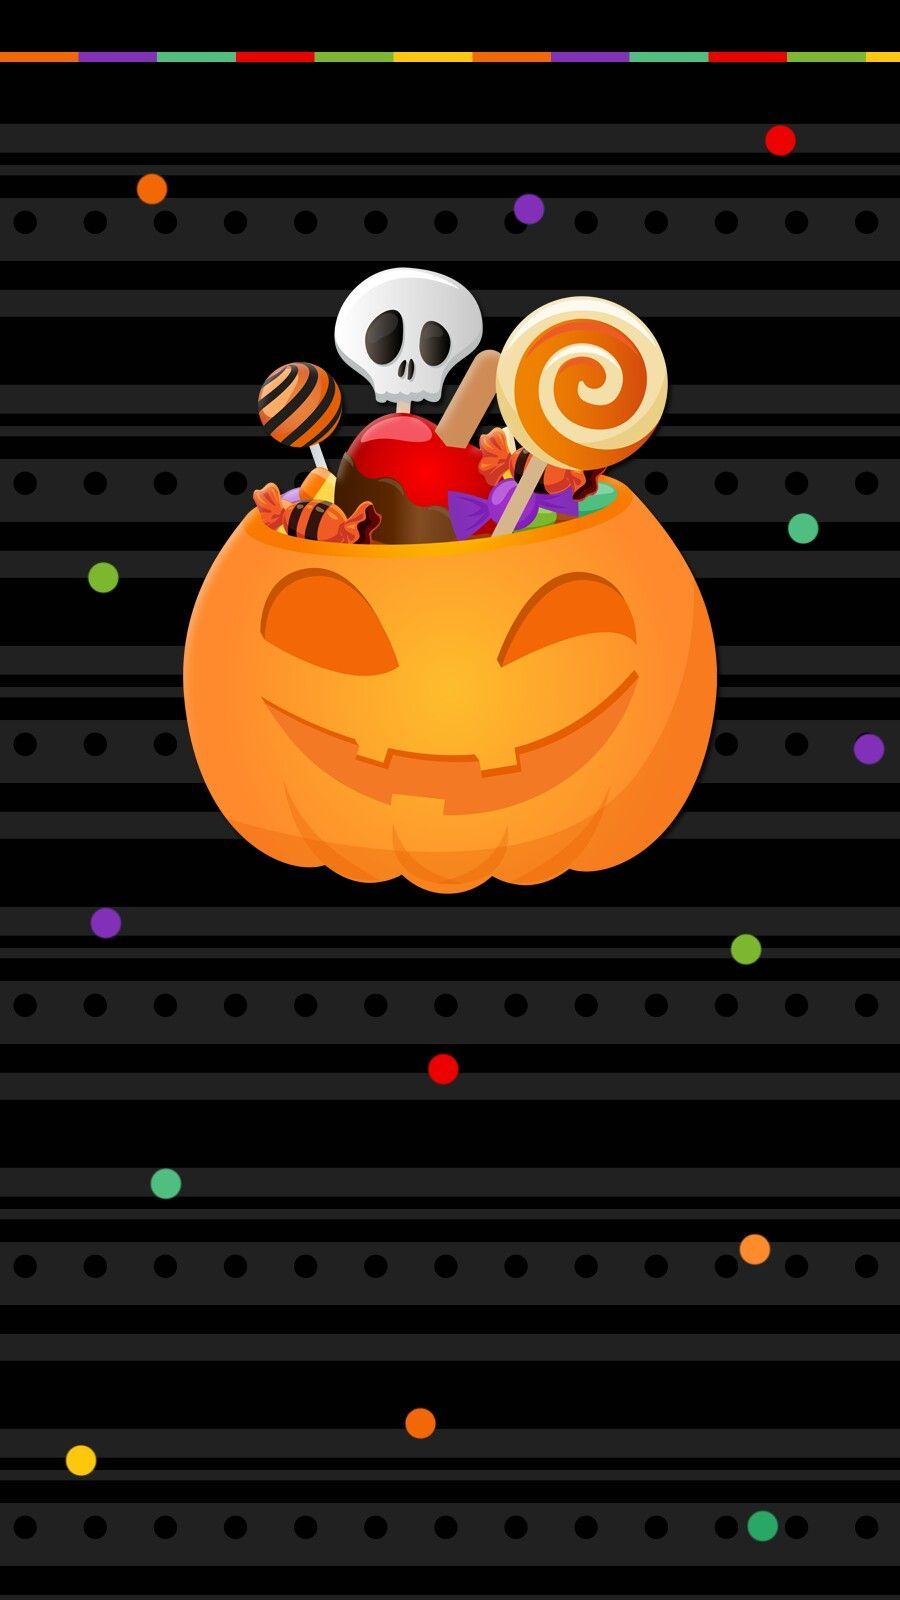 Happy Halloween Wallpaper Iphone Android Theme Cute Happyfallyallwallpaper Happ Halloween Wallpaper Halloween Wallpaper Iphone Halloween Wallpaper Cute